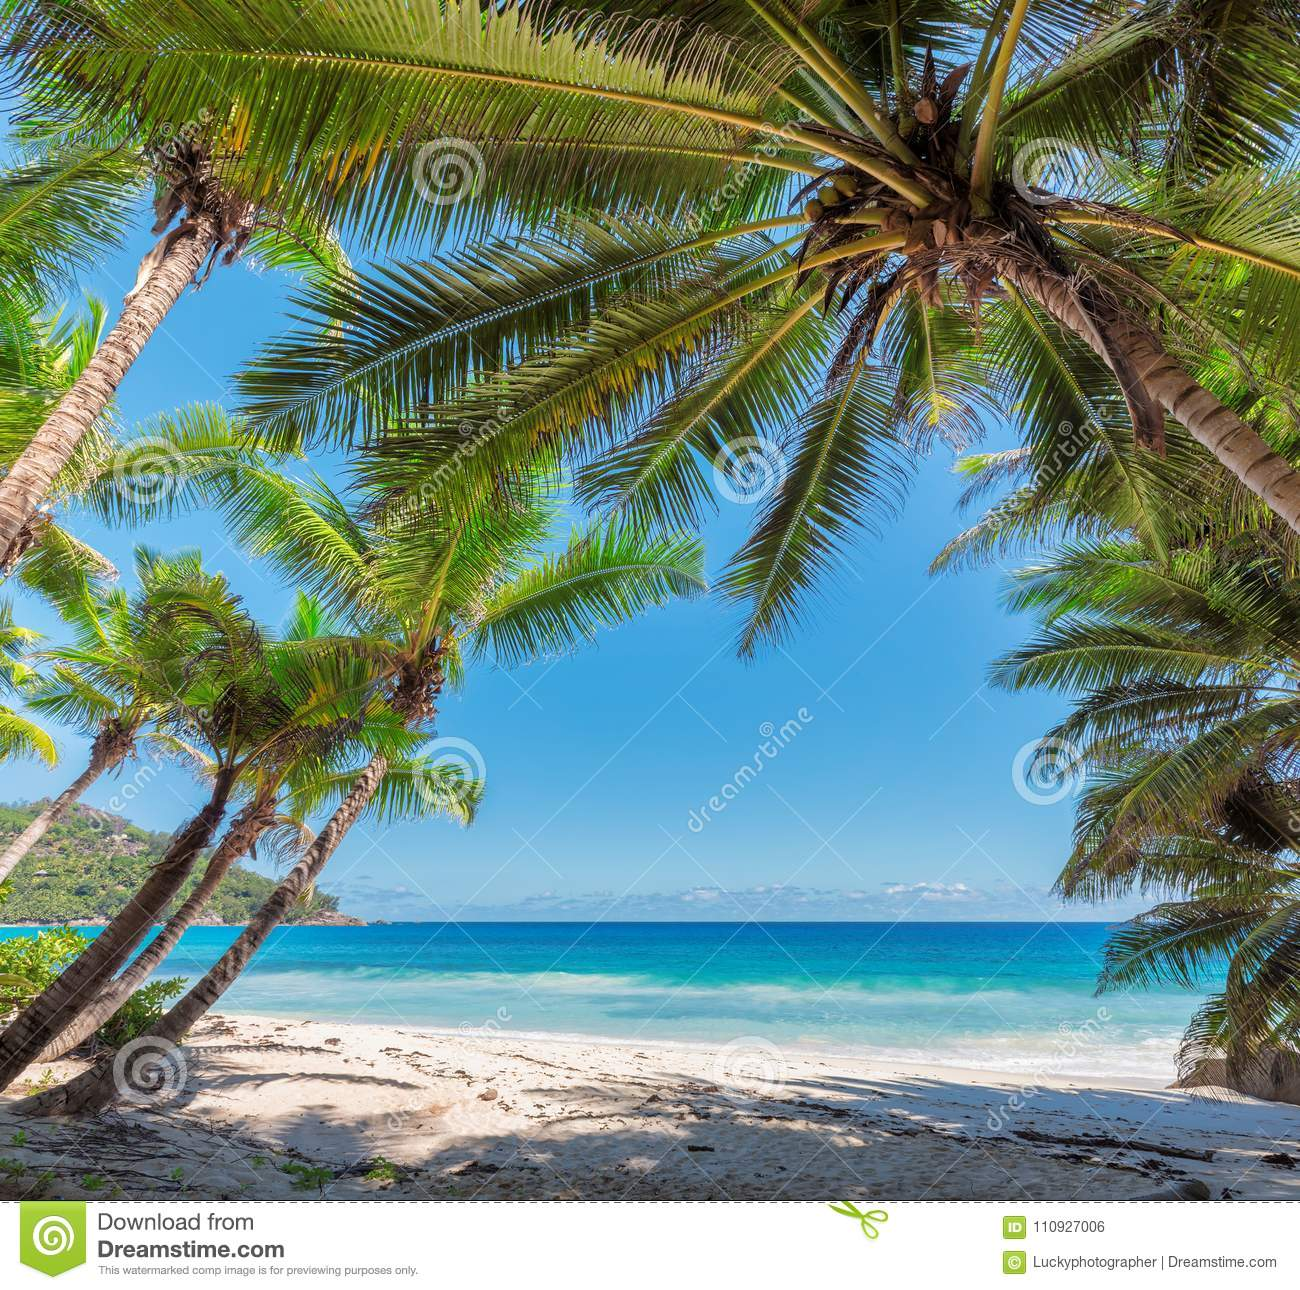 Seychelles Island Beaches: Frame From Palm Trees On A Beach In Seychelles, Mahe